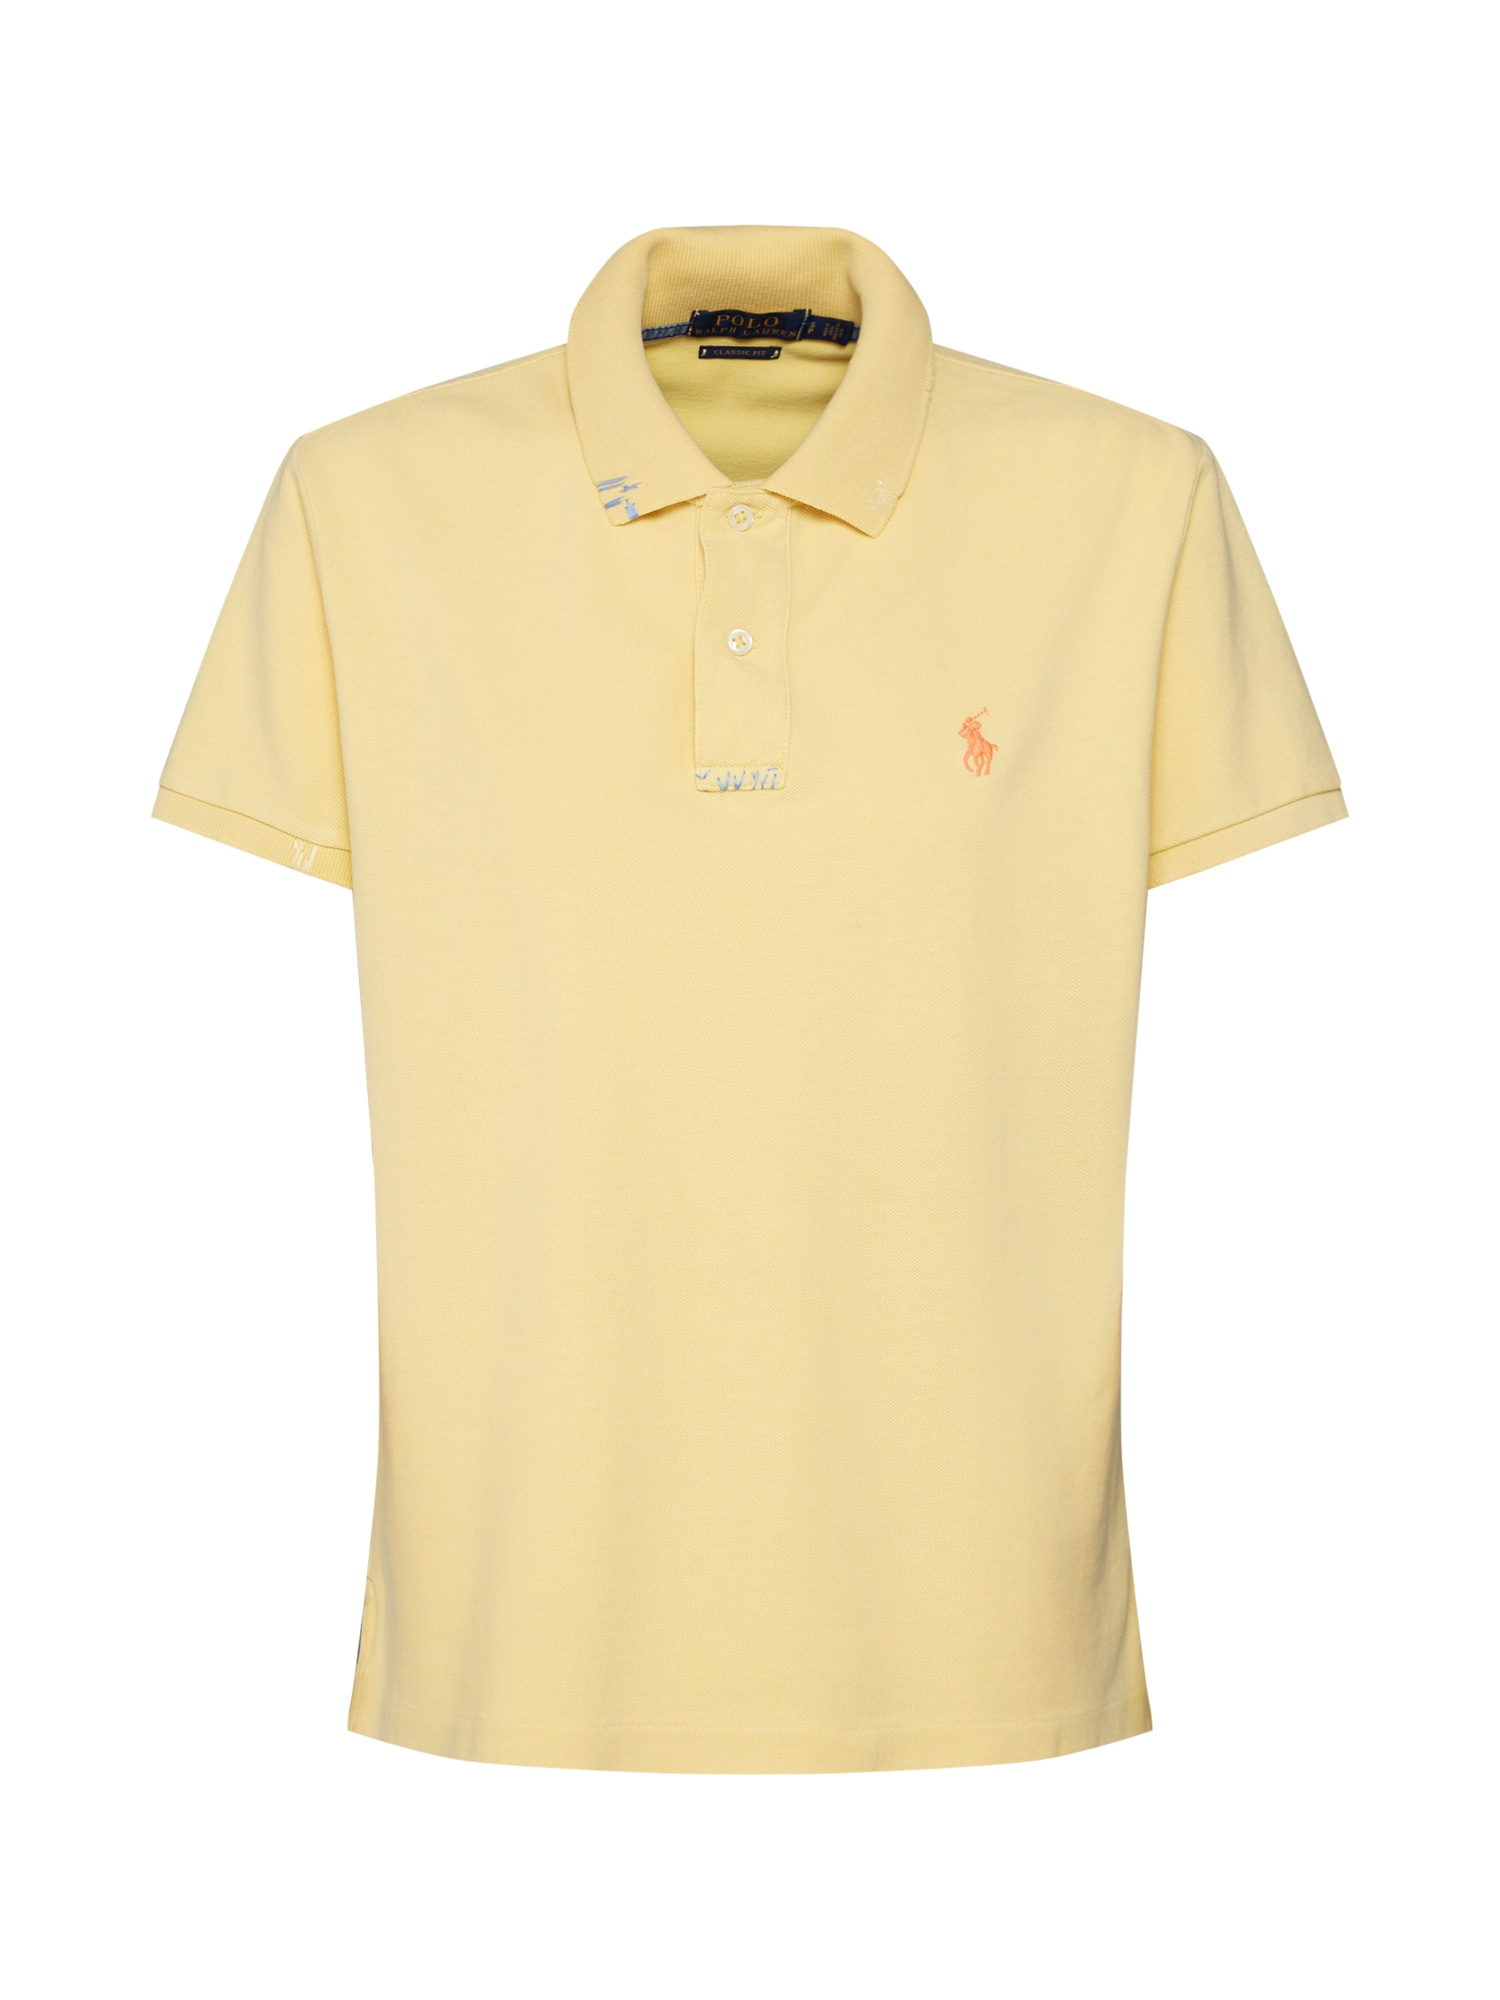 Tričko FIT RM-CLASSIC-SHORT SLEEVE-KNIT žlutá POLO RALPH LAUREN